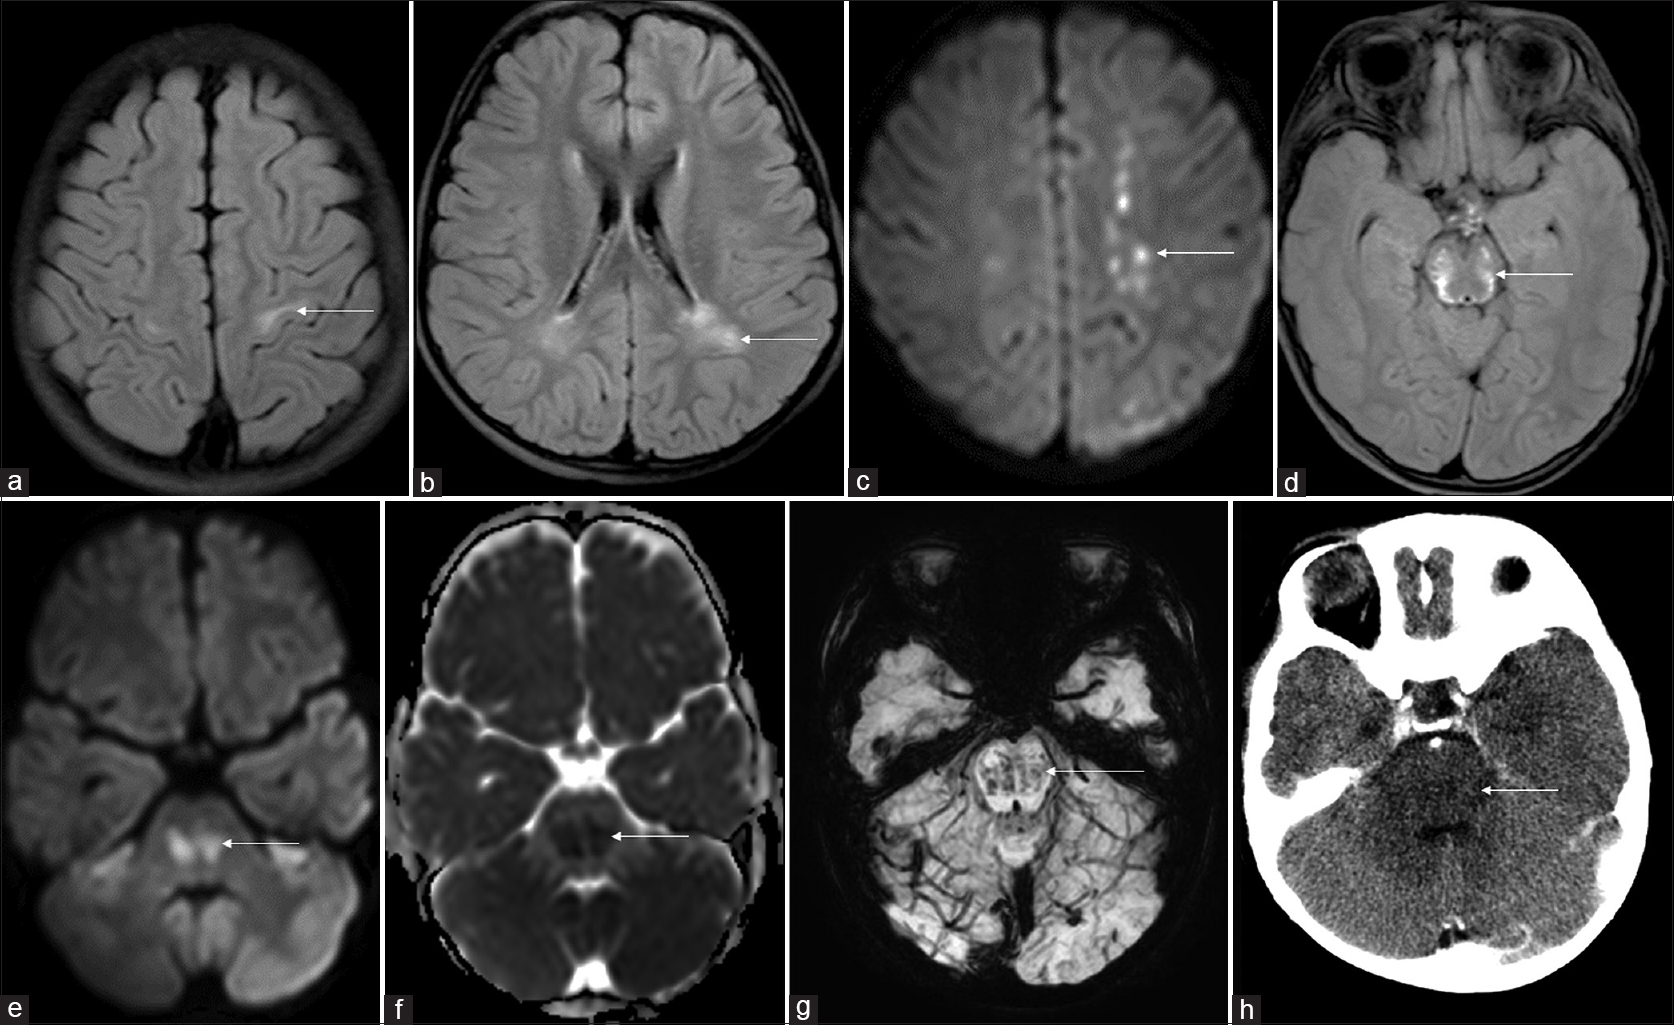 Figure 1: Magnetic resonance imaging fluid-attenuated inversion recovery axial images (a and b) bilateral white matter hyperintensities in the precentral gyrus and posterior periventricular region. Diffusion-weighted image (c) multiple foci of restriction in the left centrum semiovale. Fluid-attenuated inversion recovery axial image (d) symmetric midbrain hyperintensity. Diffusion-weighted image and apparent diffusion coefficient image at pontine level (e and f) restricted diffusion. Susceptibility-weighted image (g) hypointense foci in pons suggestive of bleed. Computerized tomography brain (h) hypodensity and swelling of the pons